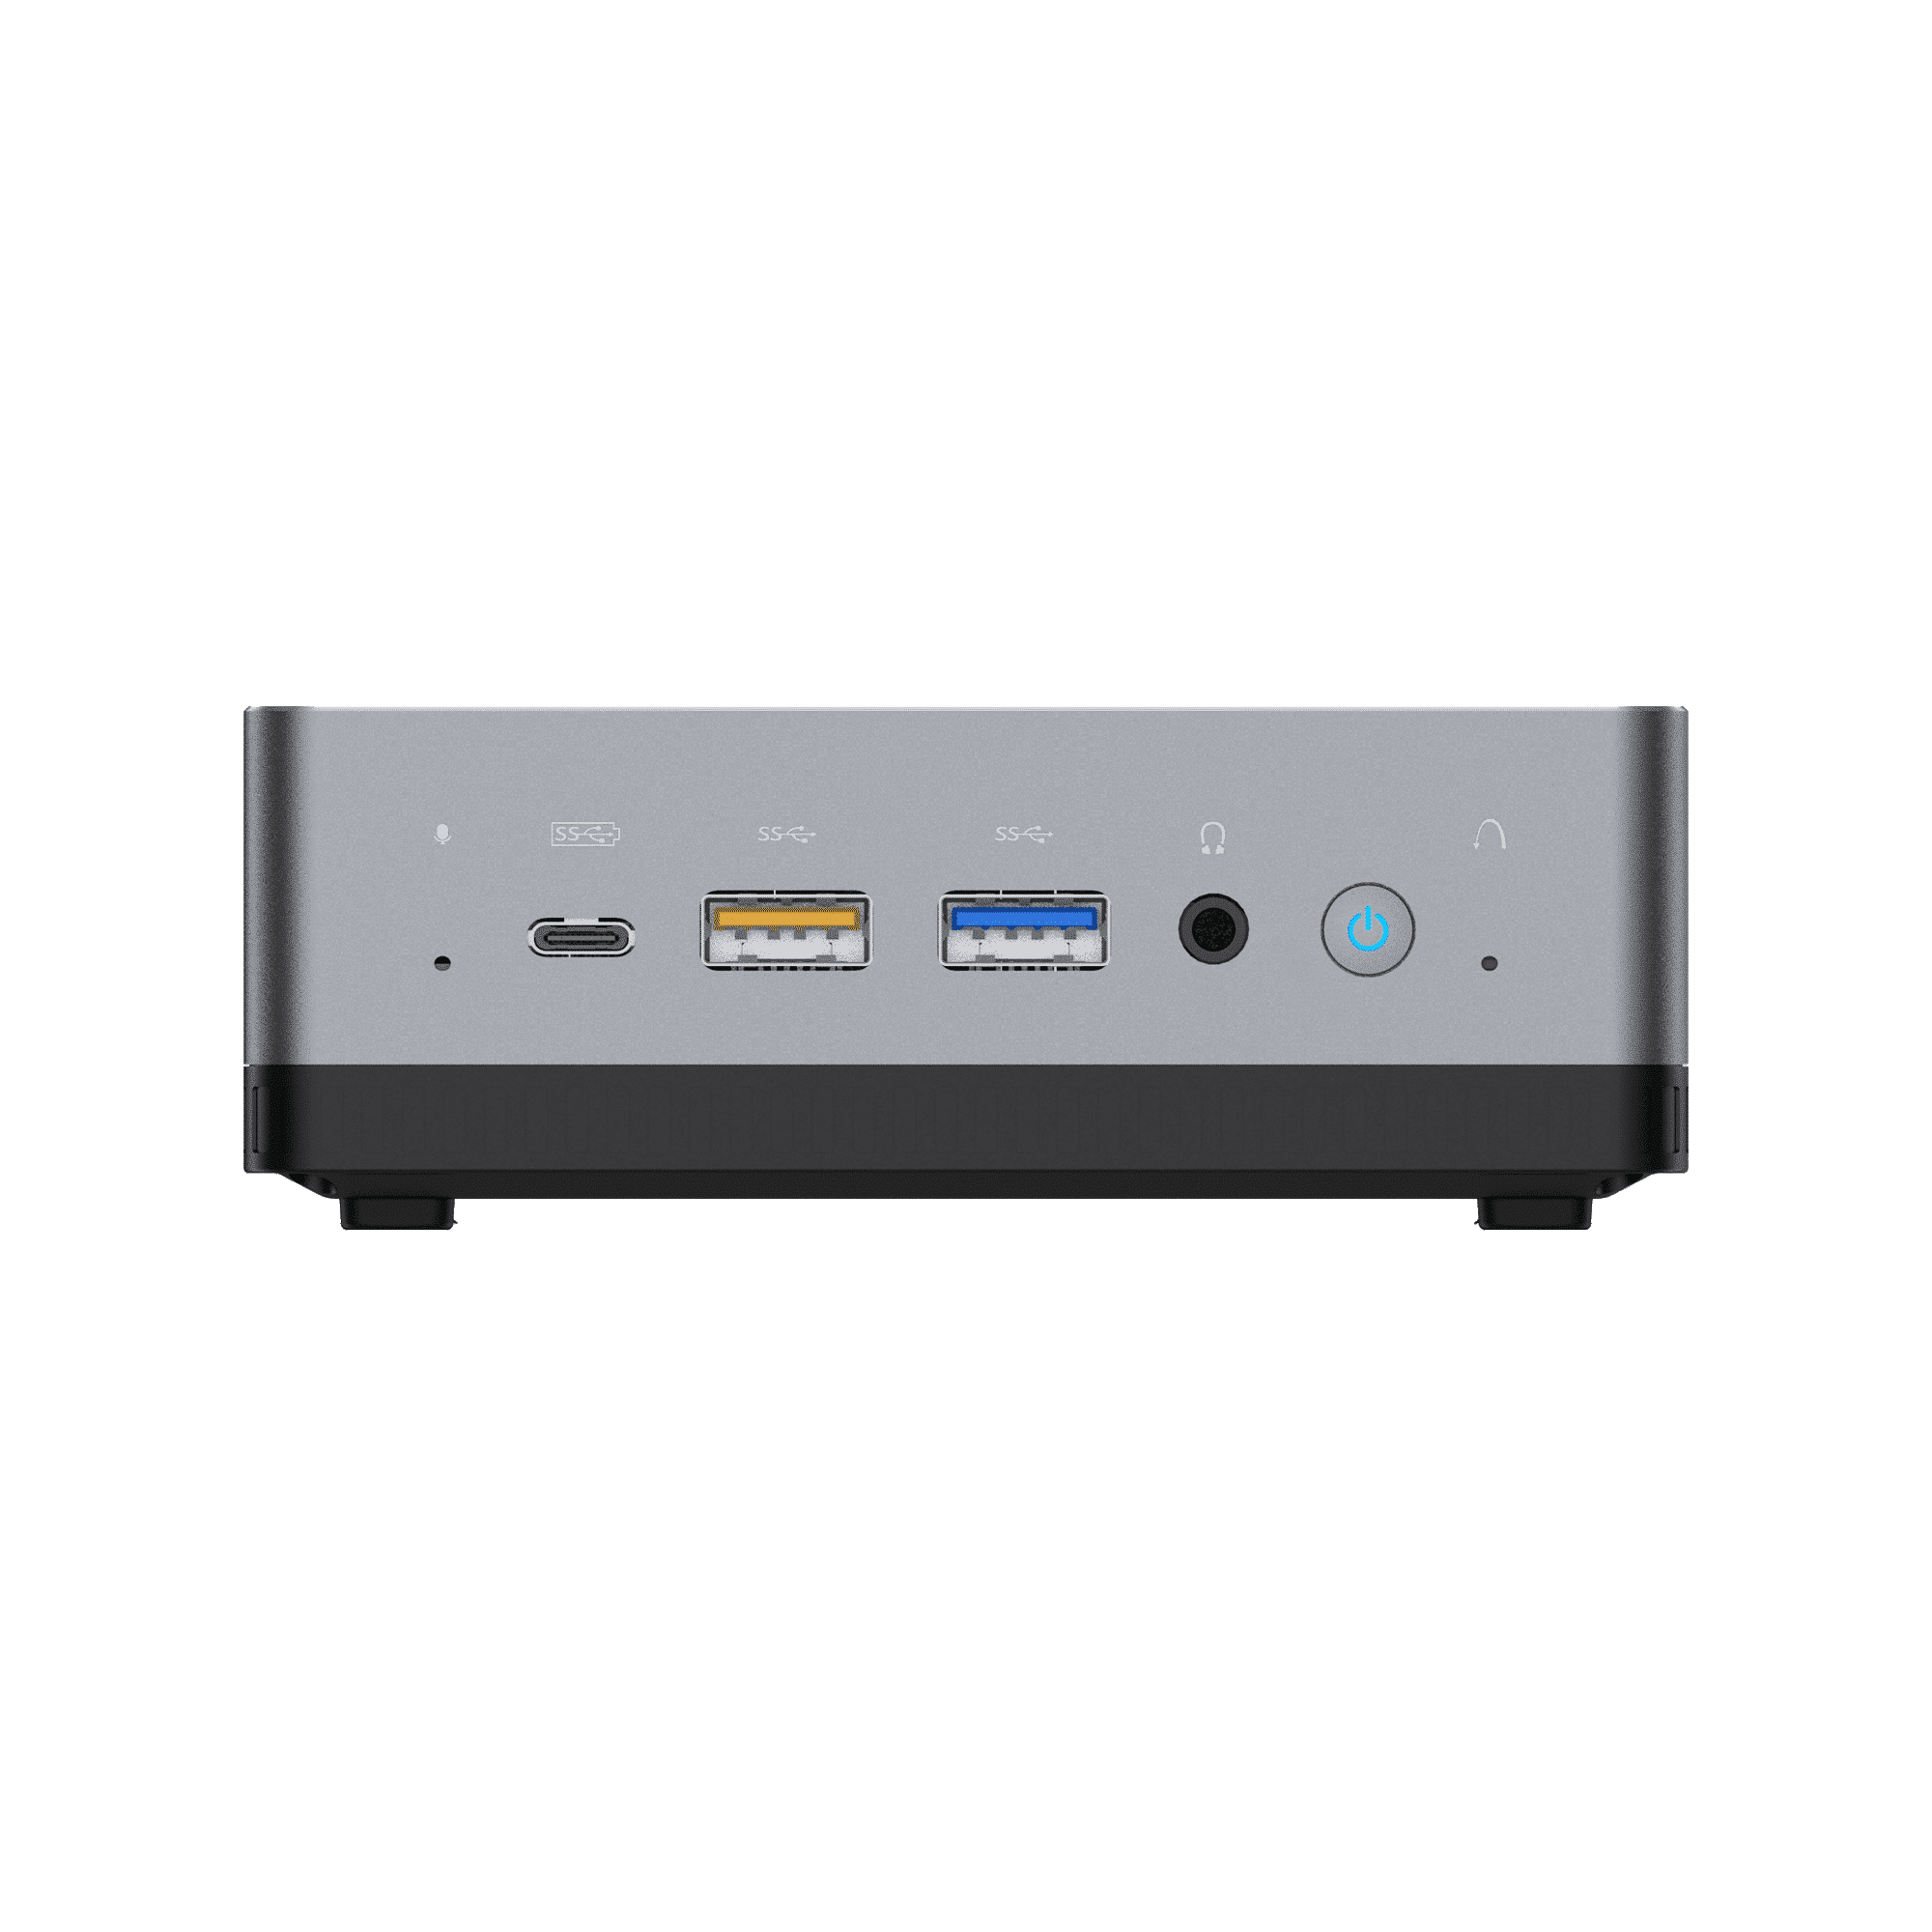 MinisForum EliteMini UM700 - Shown from the front with 1x USB Type-C Port, and 2x USB Type-A Ports, along with a 3.5mm headphone&microphone combo jack and power button